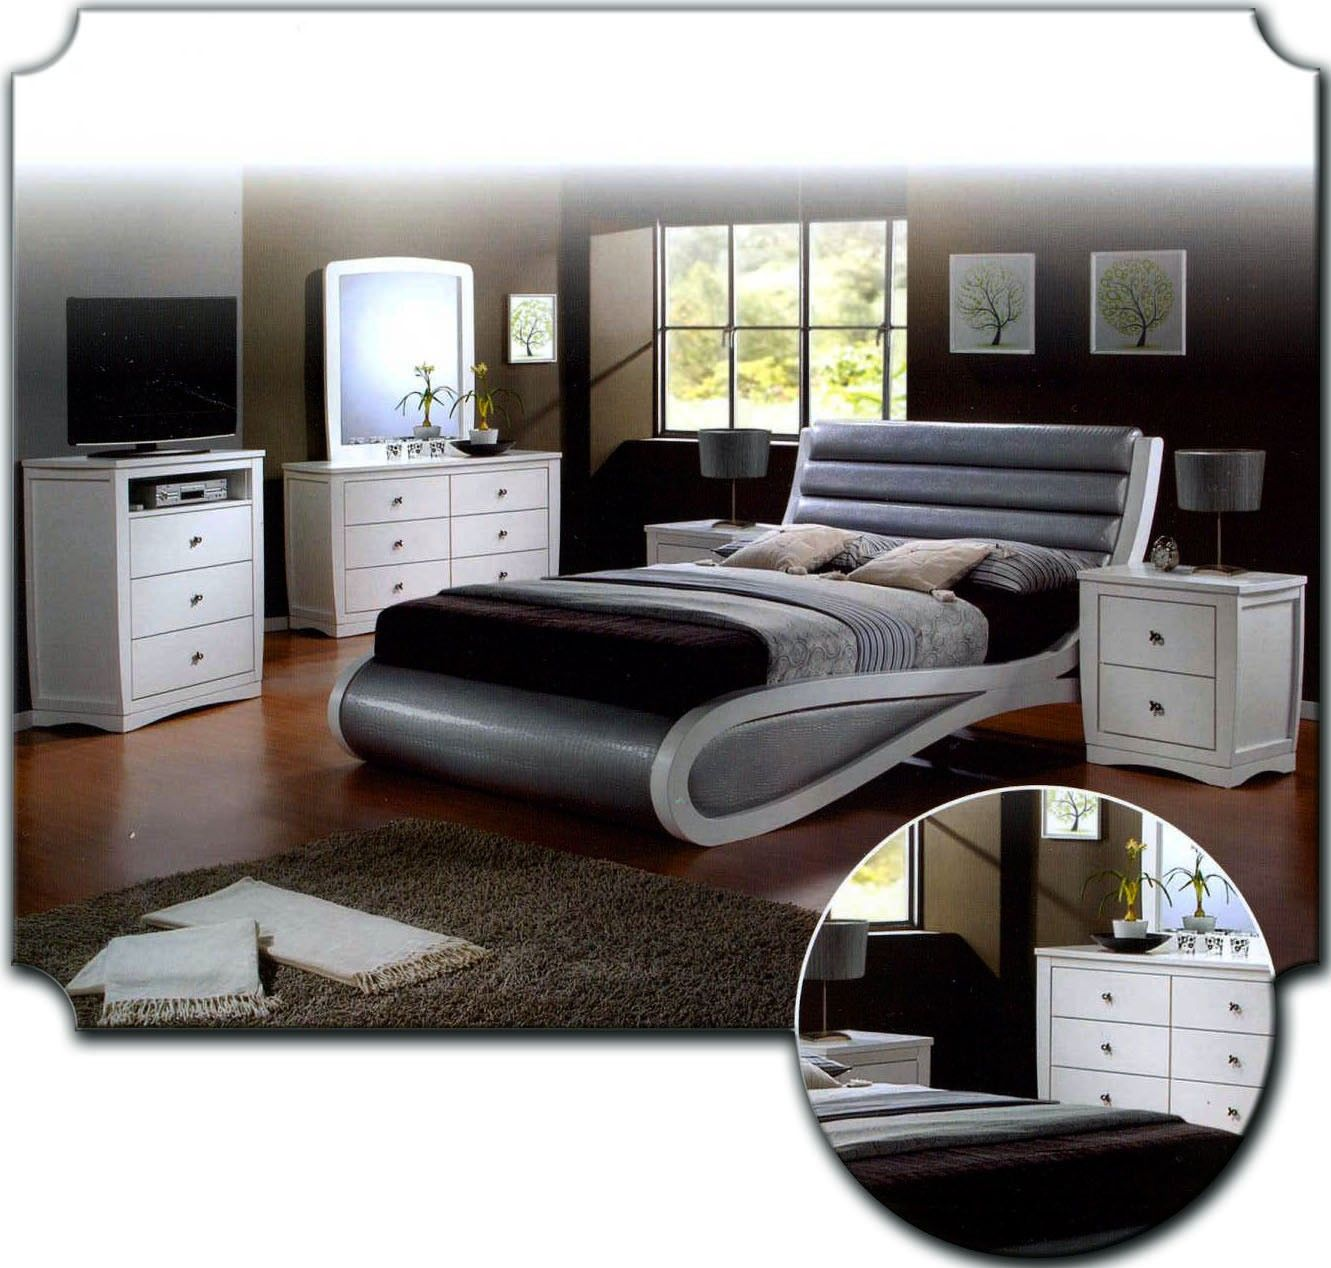 Guys Bedroom Ideas Bedroomideasforteenageguysteenplatformbedroomsetsteenage